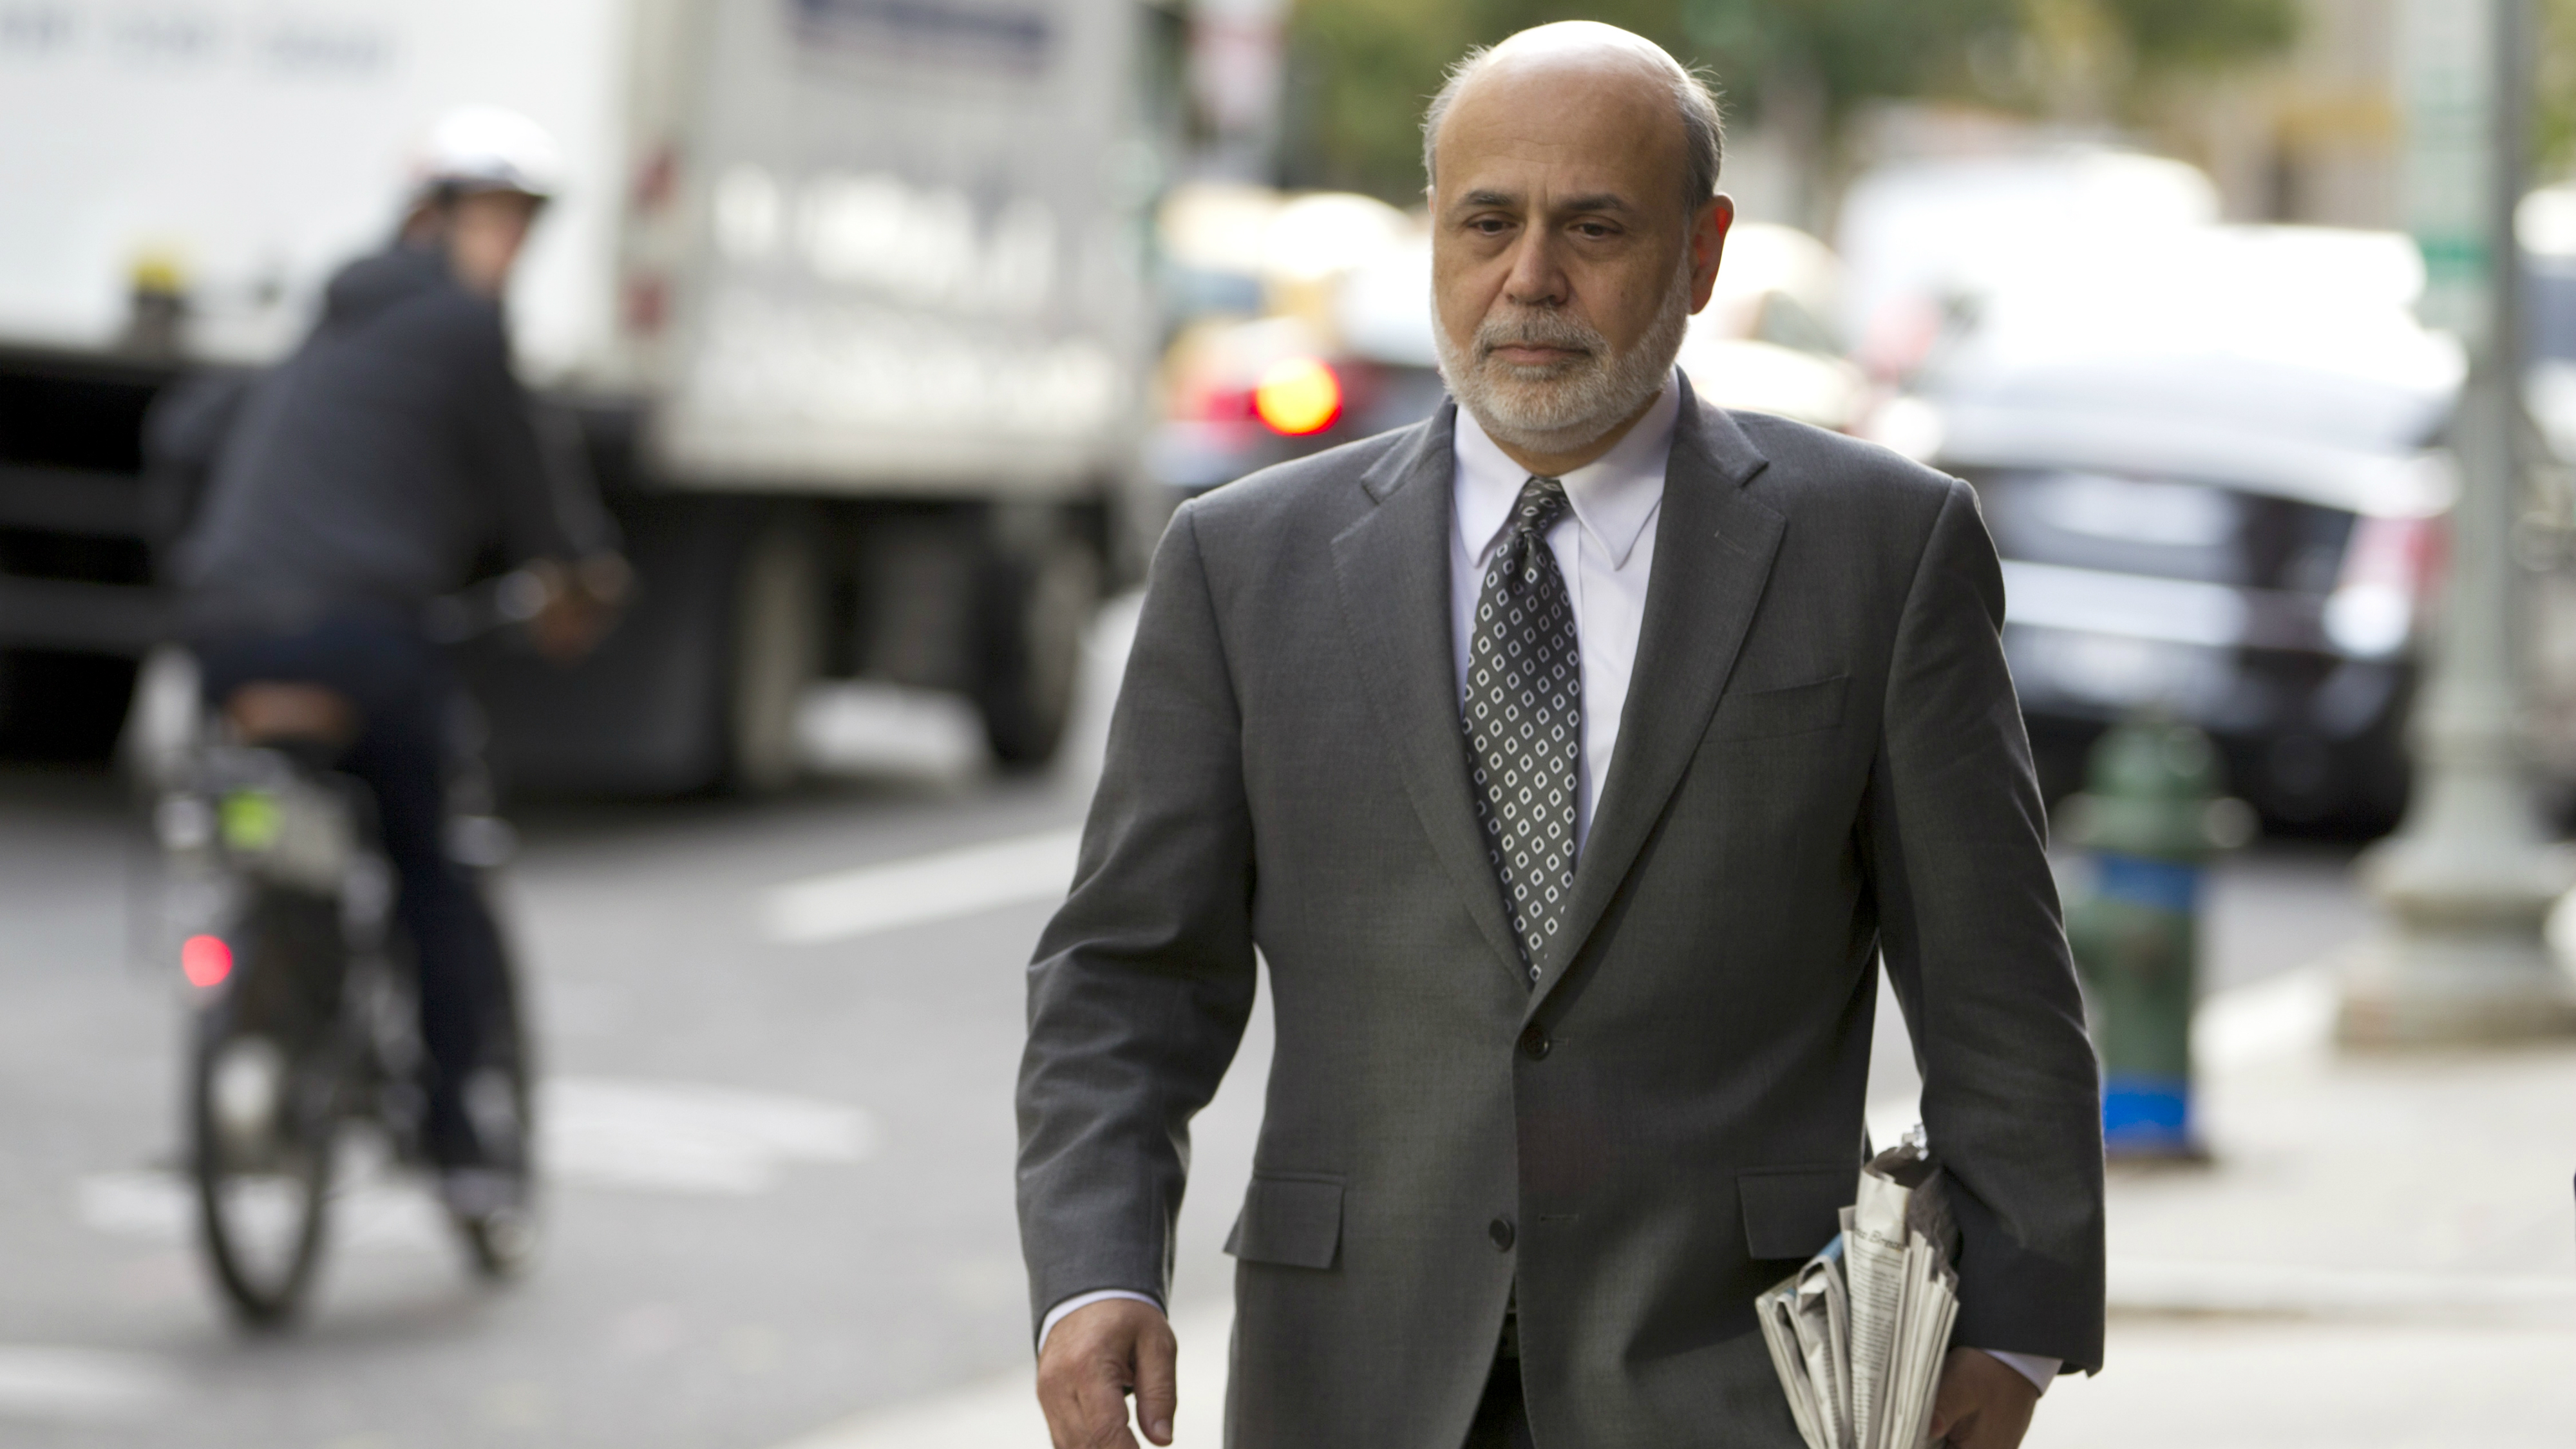 Former Federal Reserve Chairman Ben Bernanke arrives at the U.S. Court of Federal Claims in Washington, Thursday, Oct. 9, 2014, to testify in a suit on the US government's 2008 bailout of (AIG) American International Group Inc. in a trial of a lawsuit filed by the insurance giant's former CEO over the handling of the rescue.( AP Photo/Jose Luis Magana)